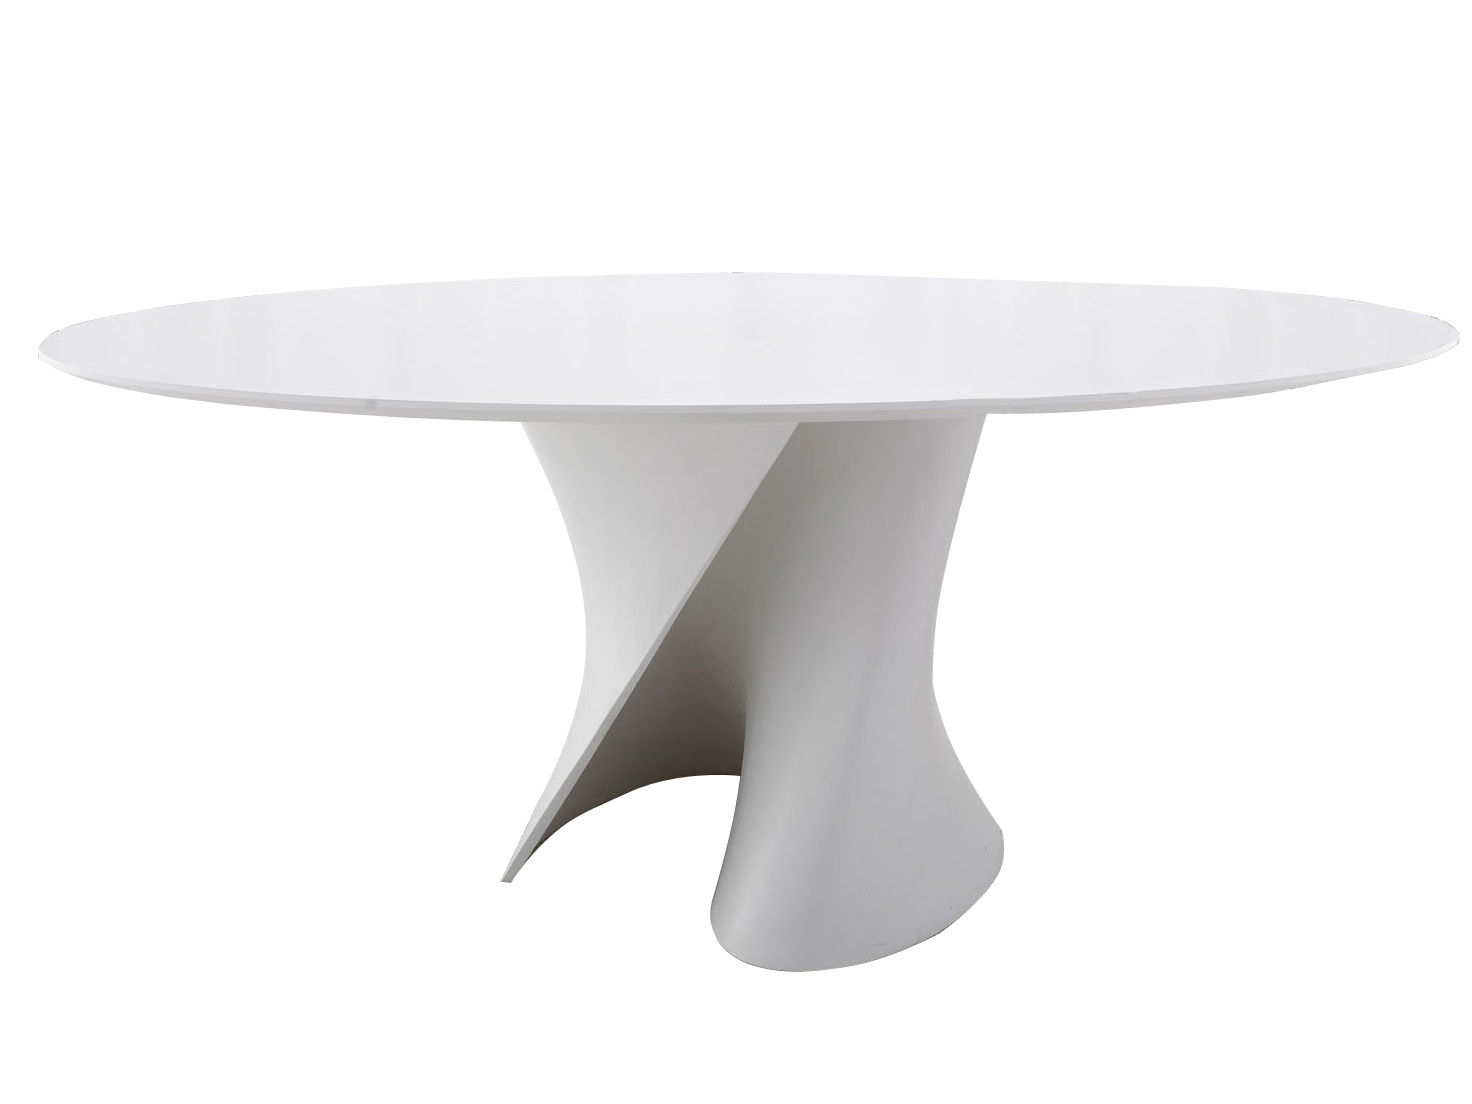 Furniture - Dining Tables - S Ovale Table - Oval 150 x 210 cm by MDF Italia - White resin top / White leg - Cristalplant